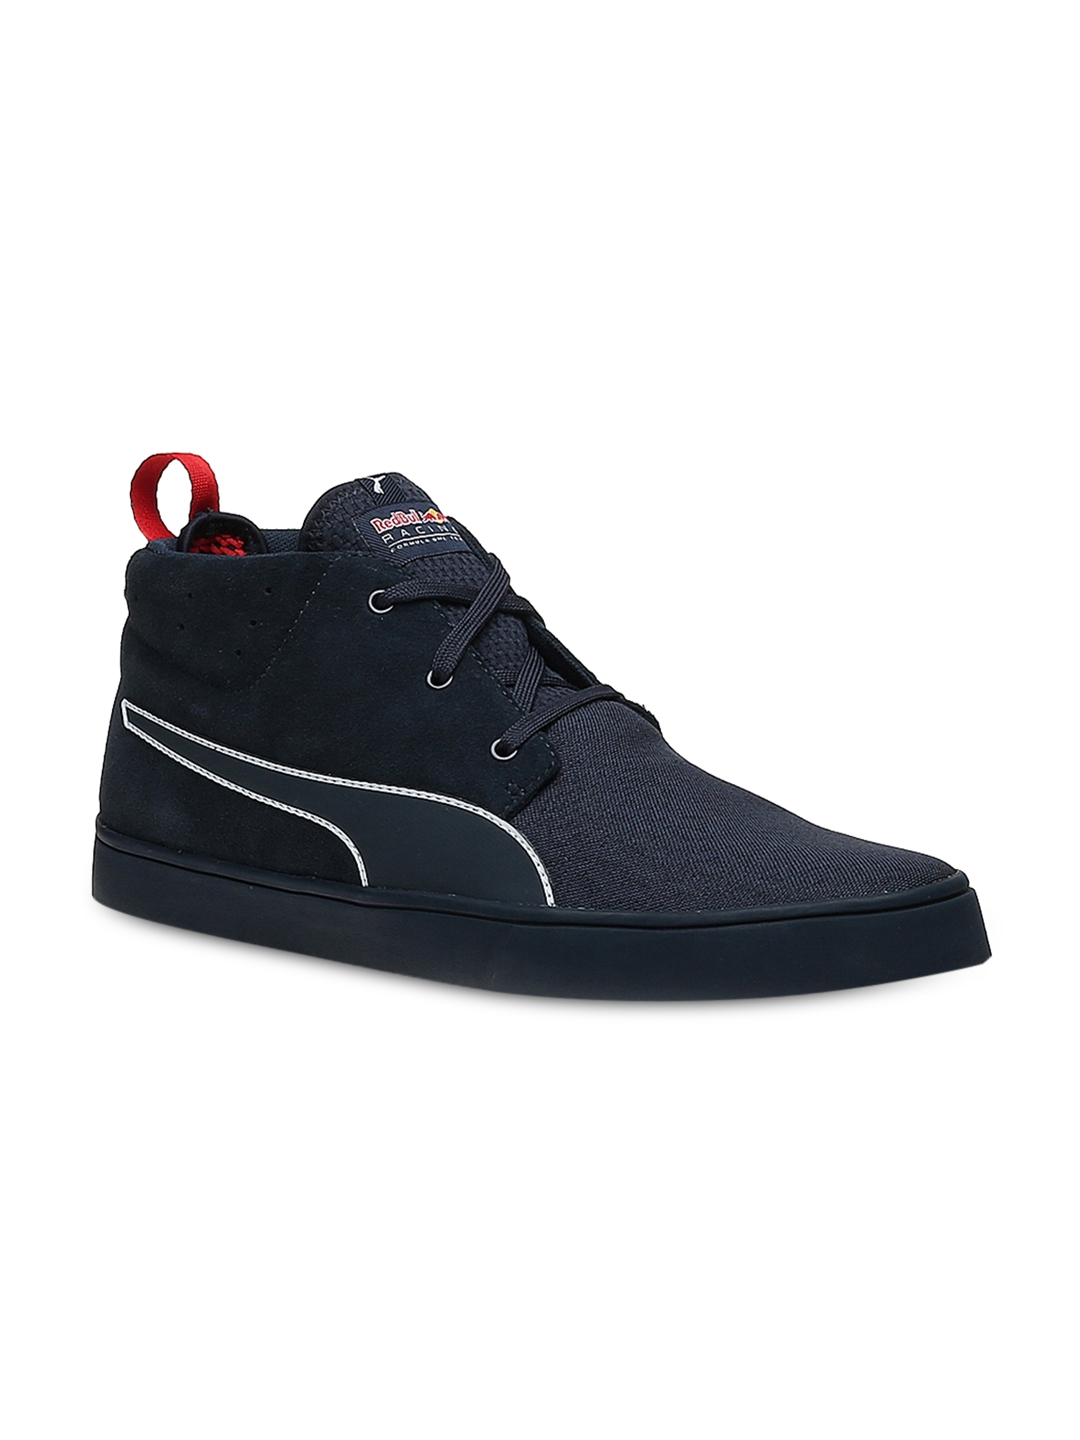 check out 159a1 5e17f Buy Puma Men Black Suede RBR Sneakers - Casual Shoes for Men ...